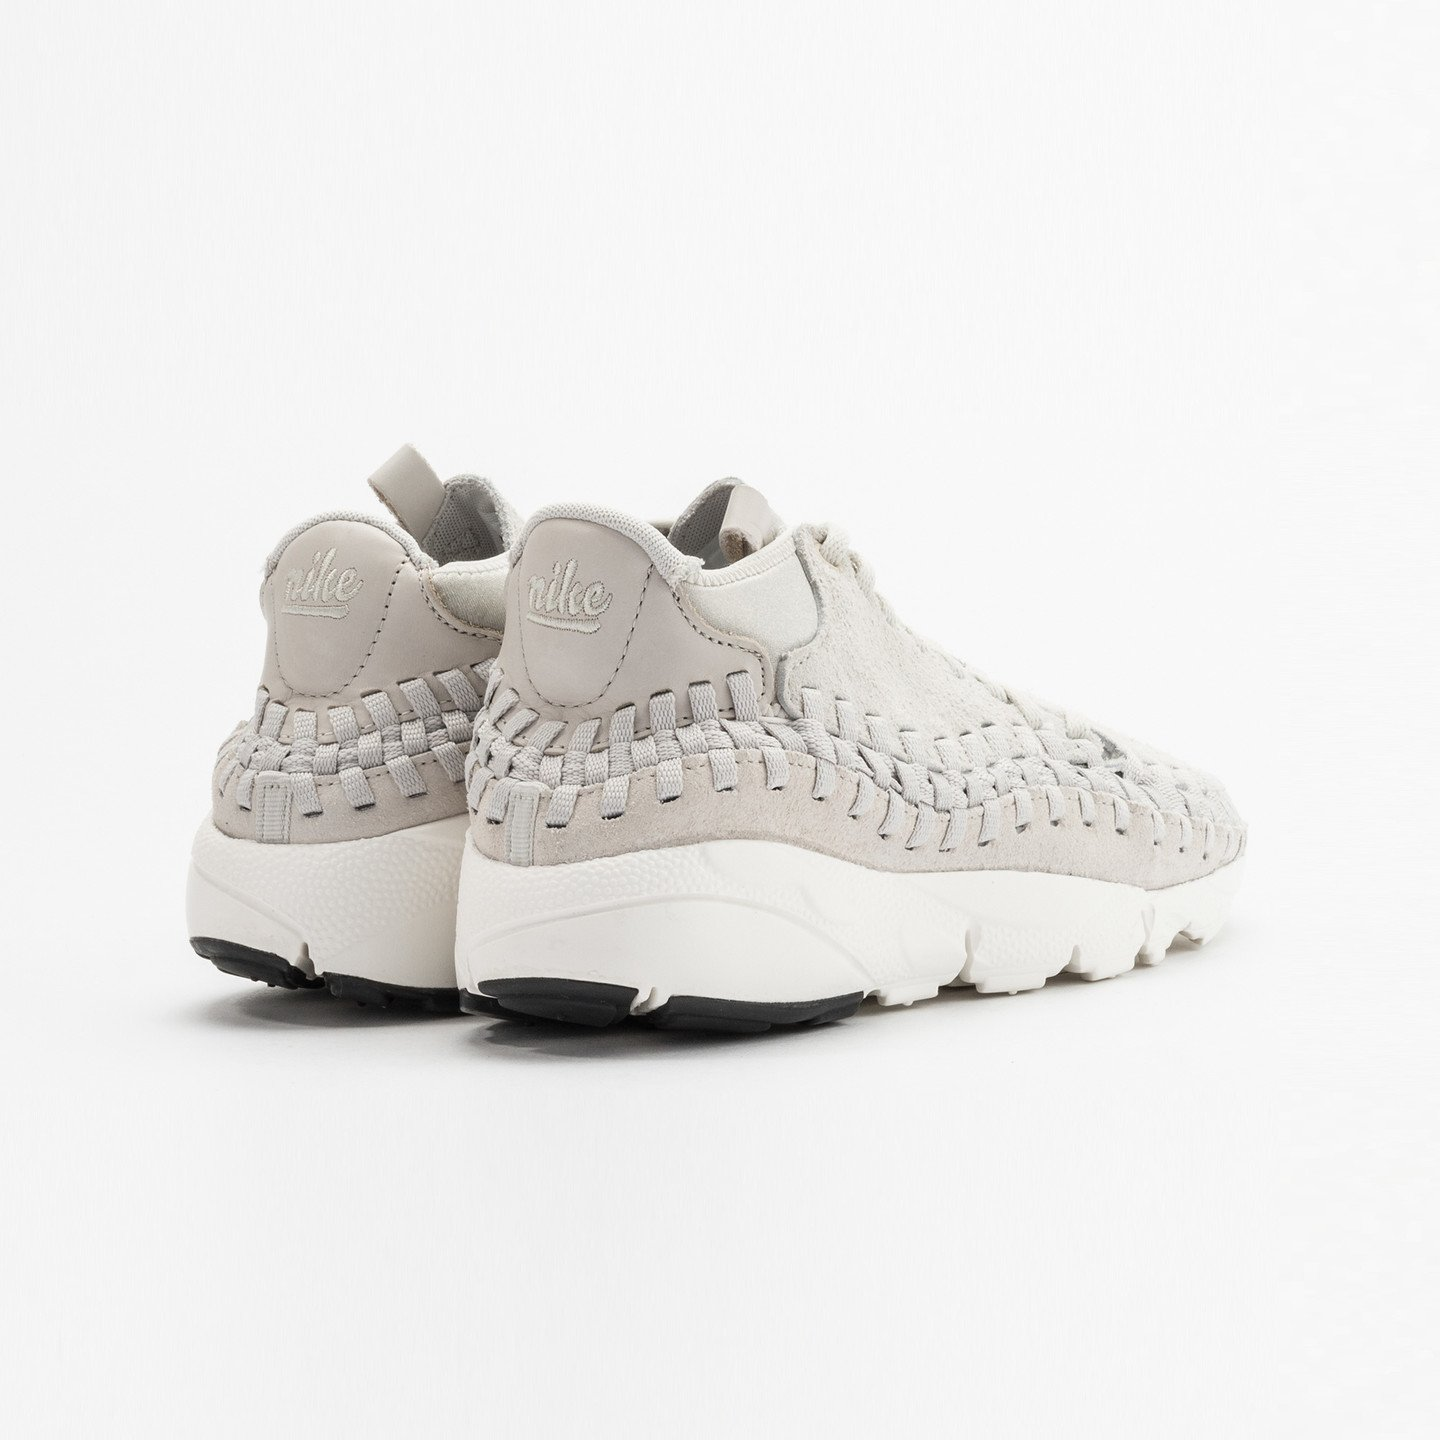 Nike Air Footscape Woven Chukka QS Light Bone / Summit White 913929-002